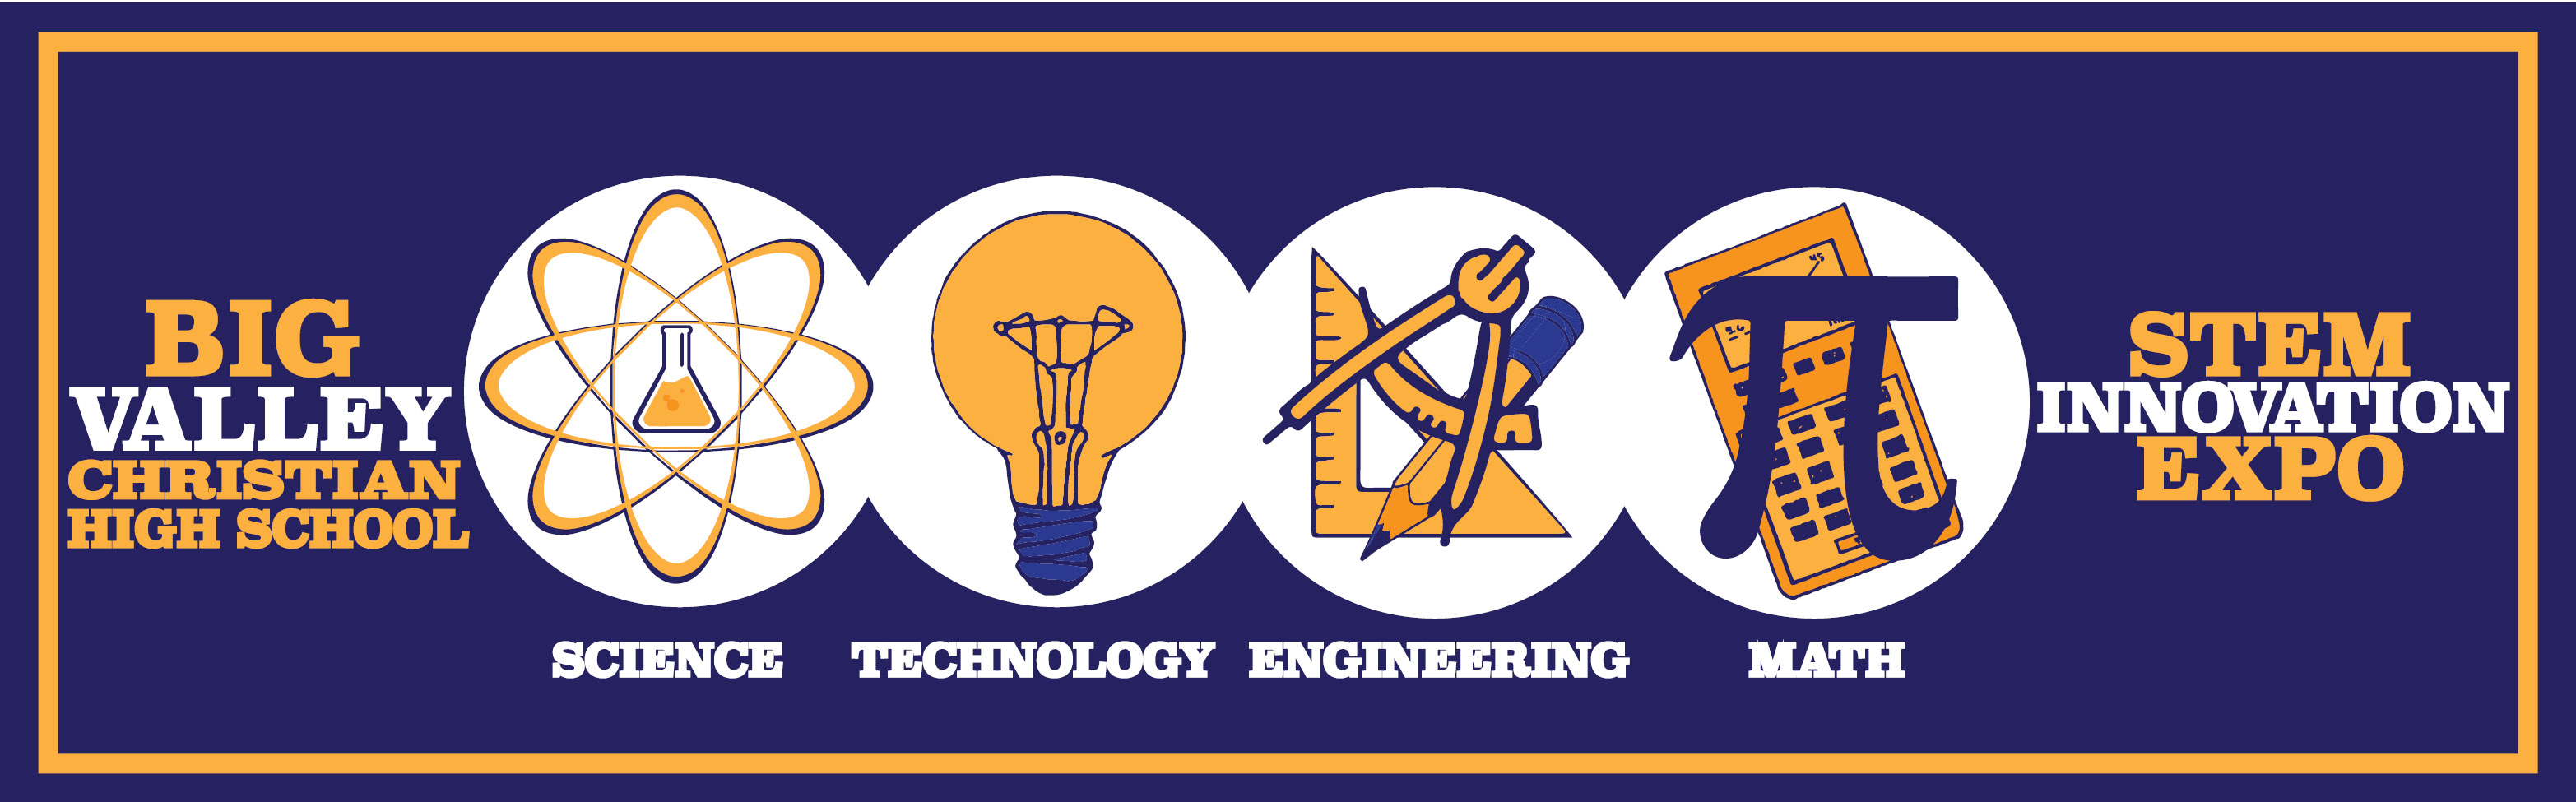 STEM Innovative Expo main logo